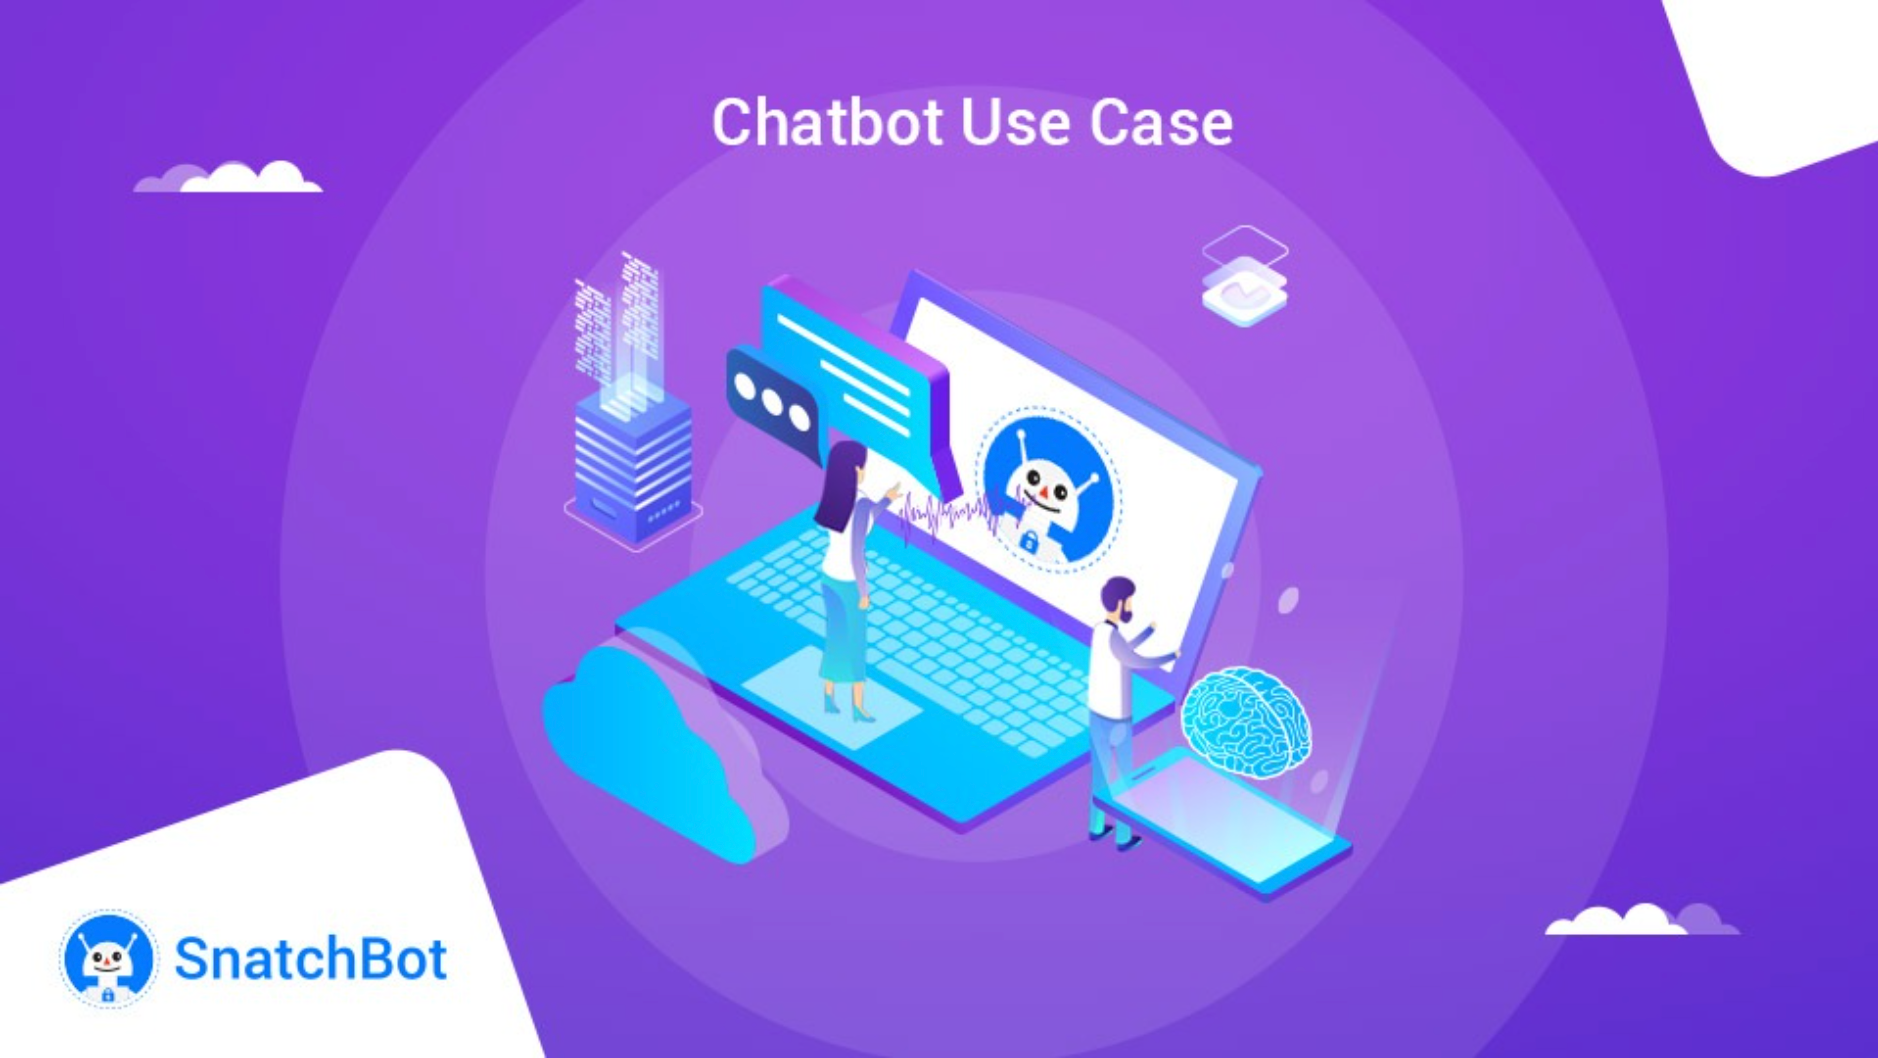 Chatbot Use Case Examples in Business